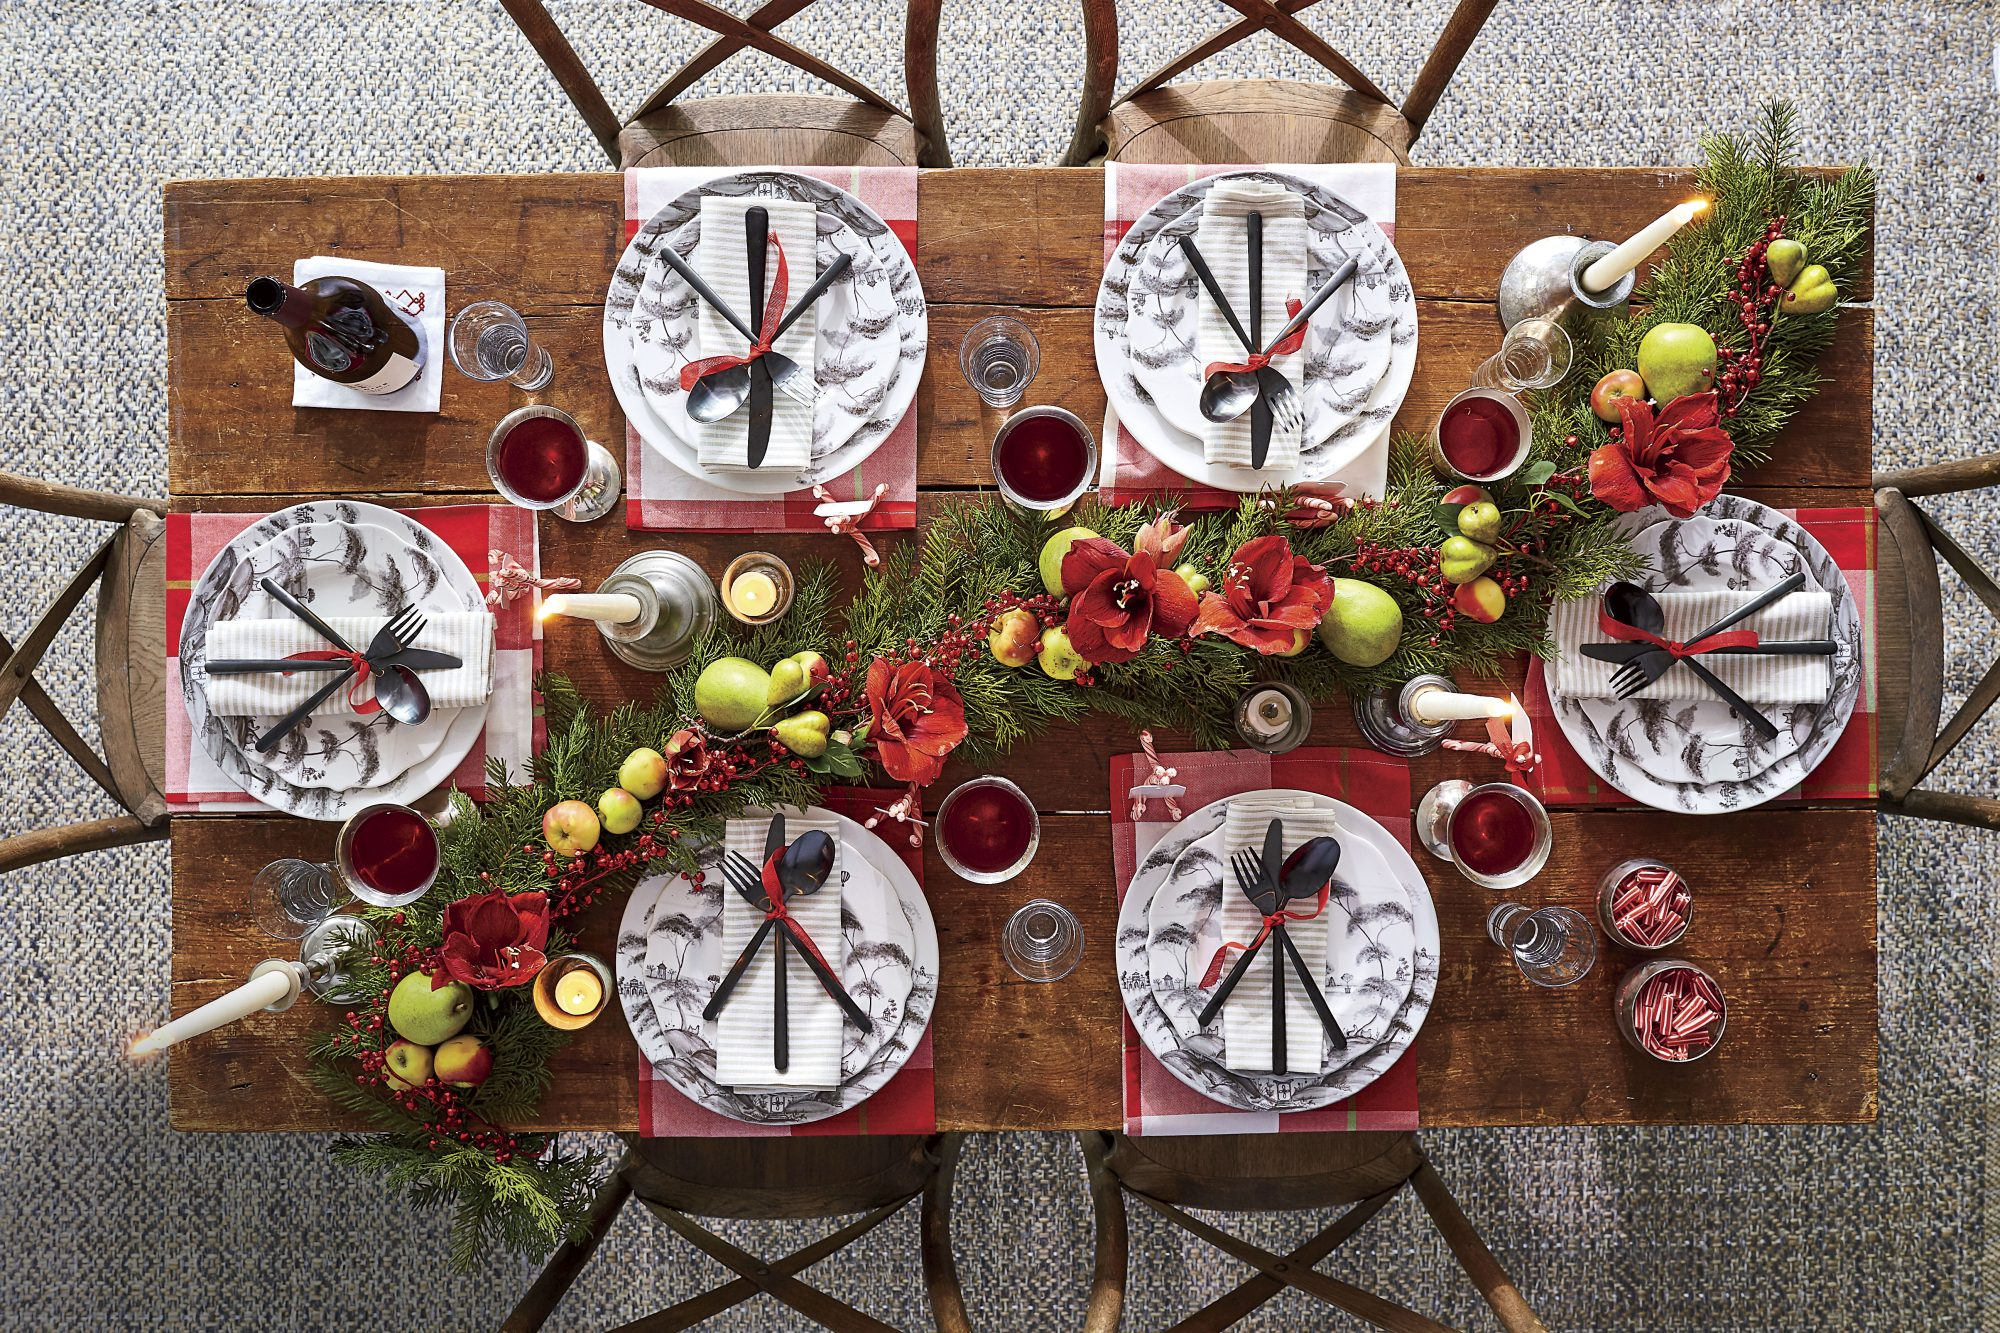 Christmas Table Decor with Blacks and Reds